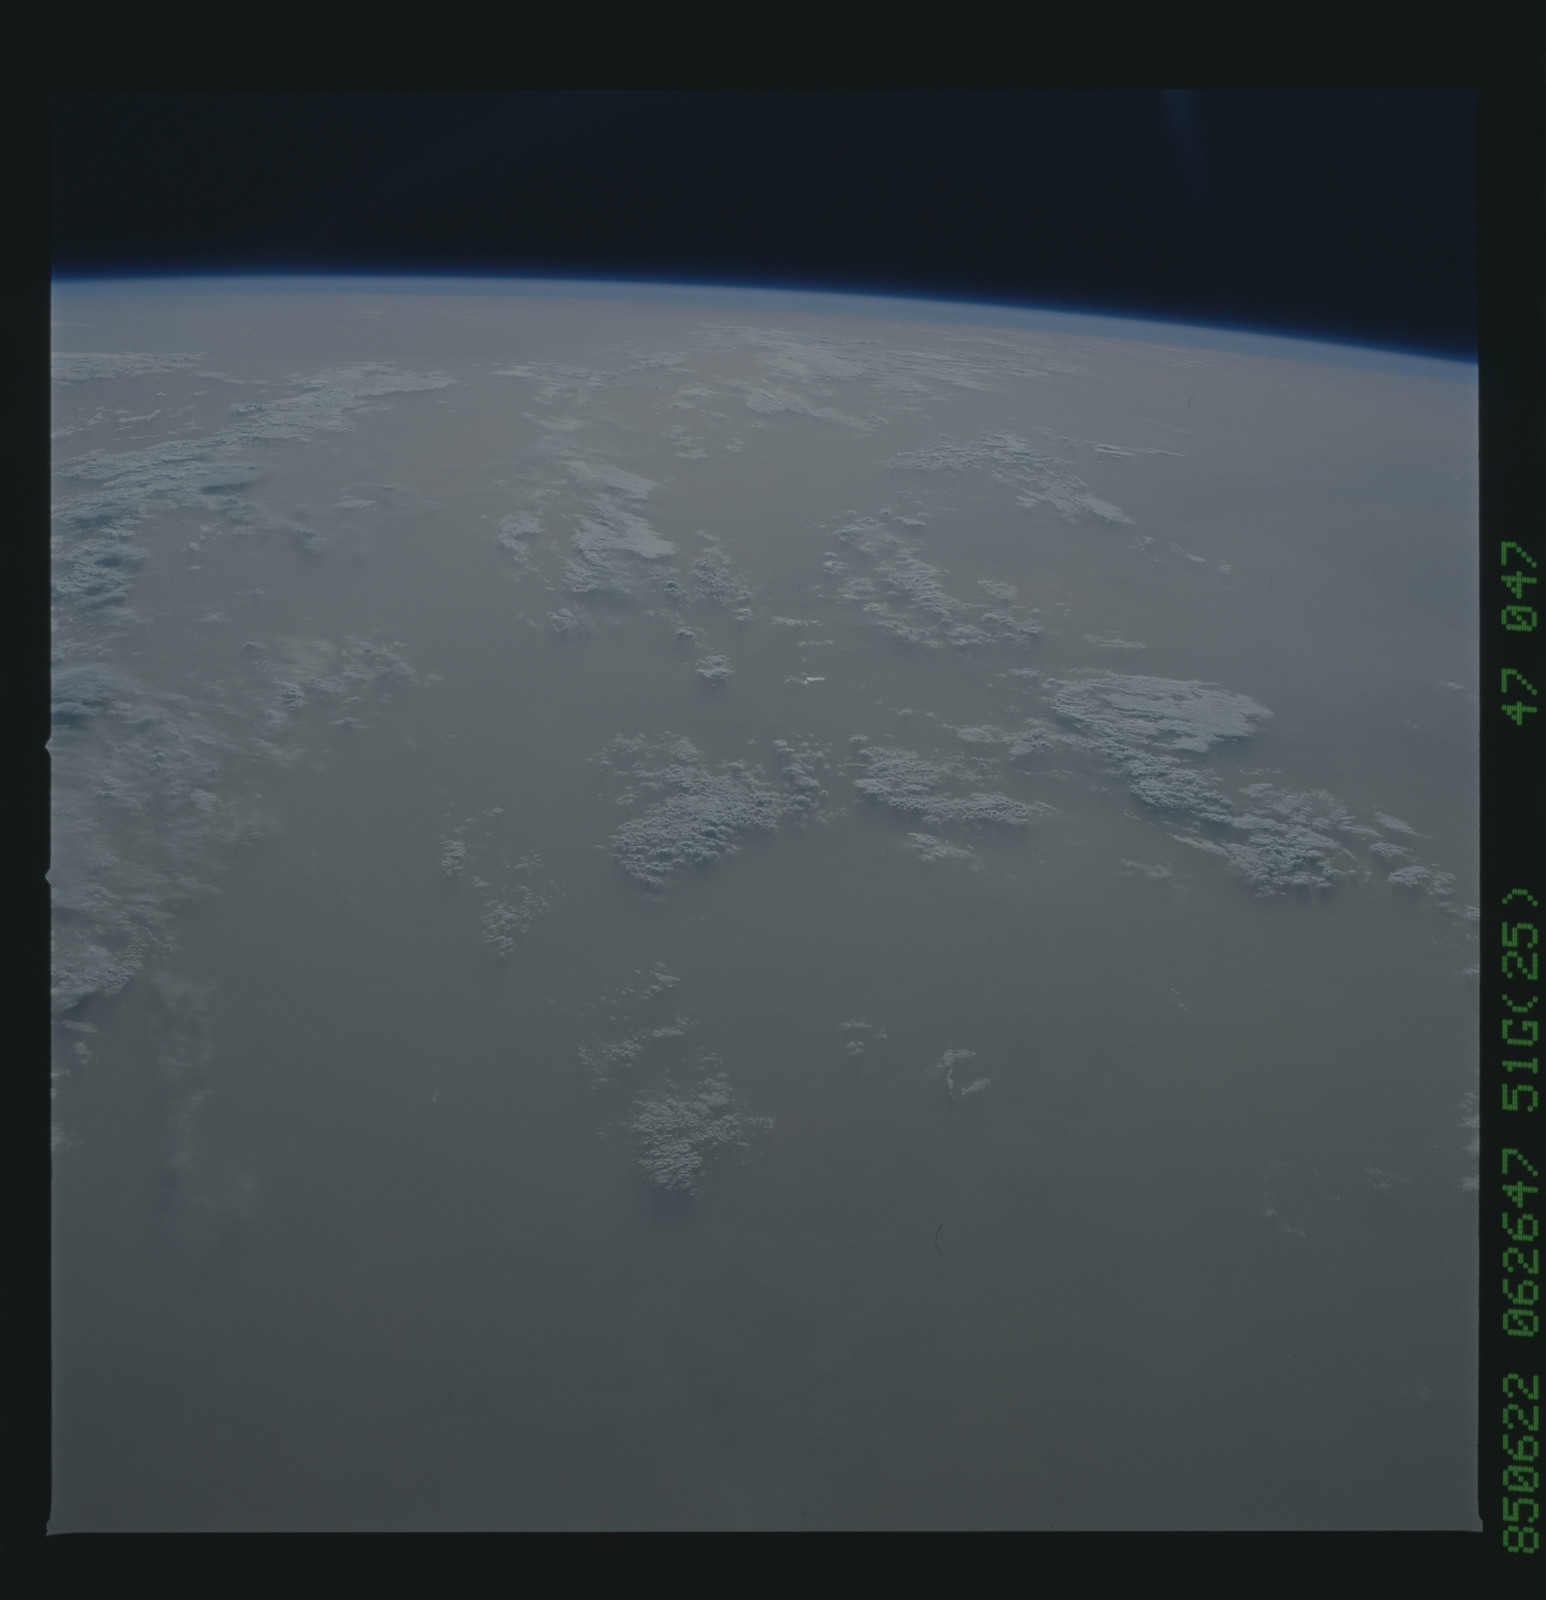 51G-47-047 - STS-51G - STS-51G earth observations